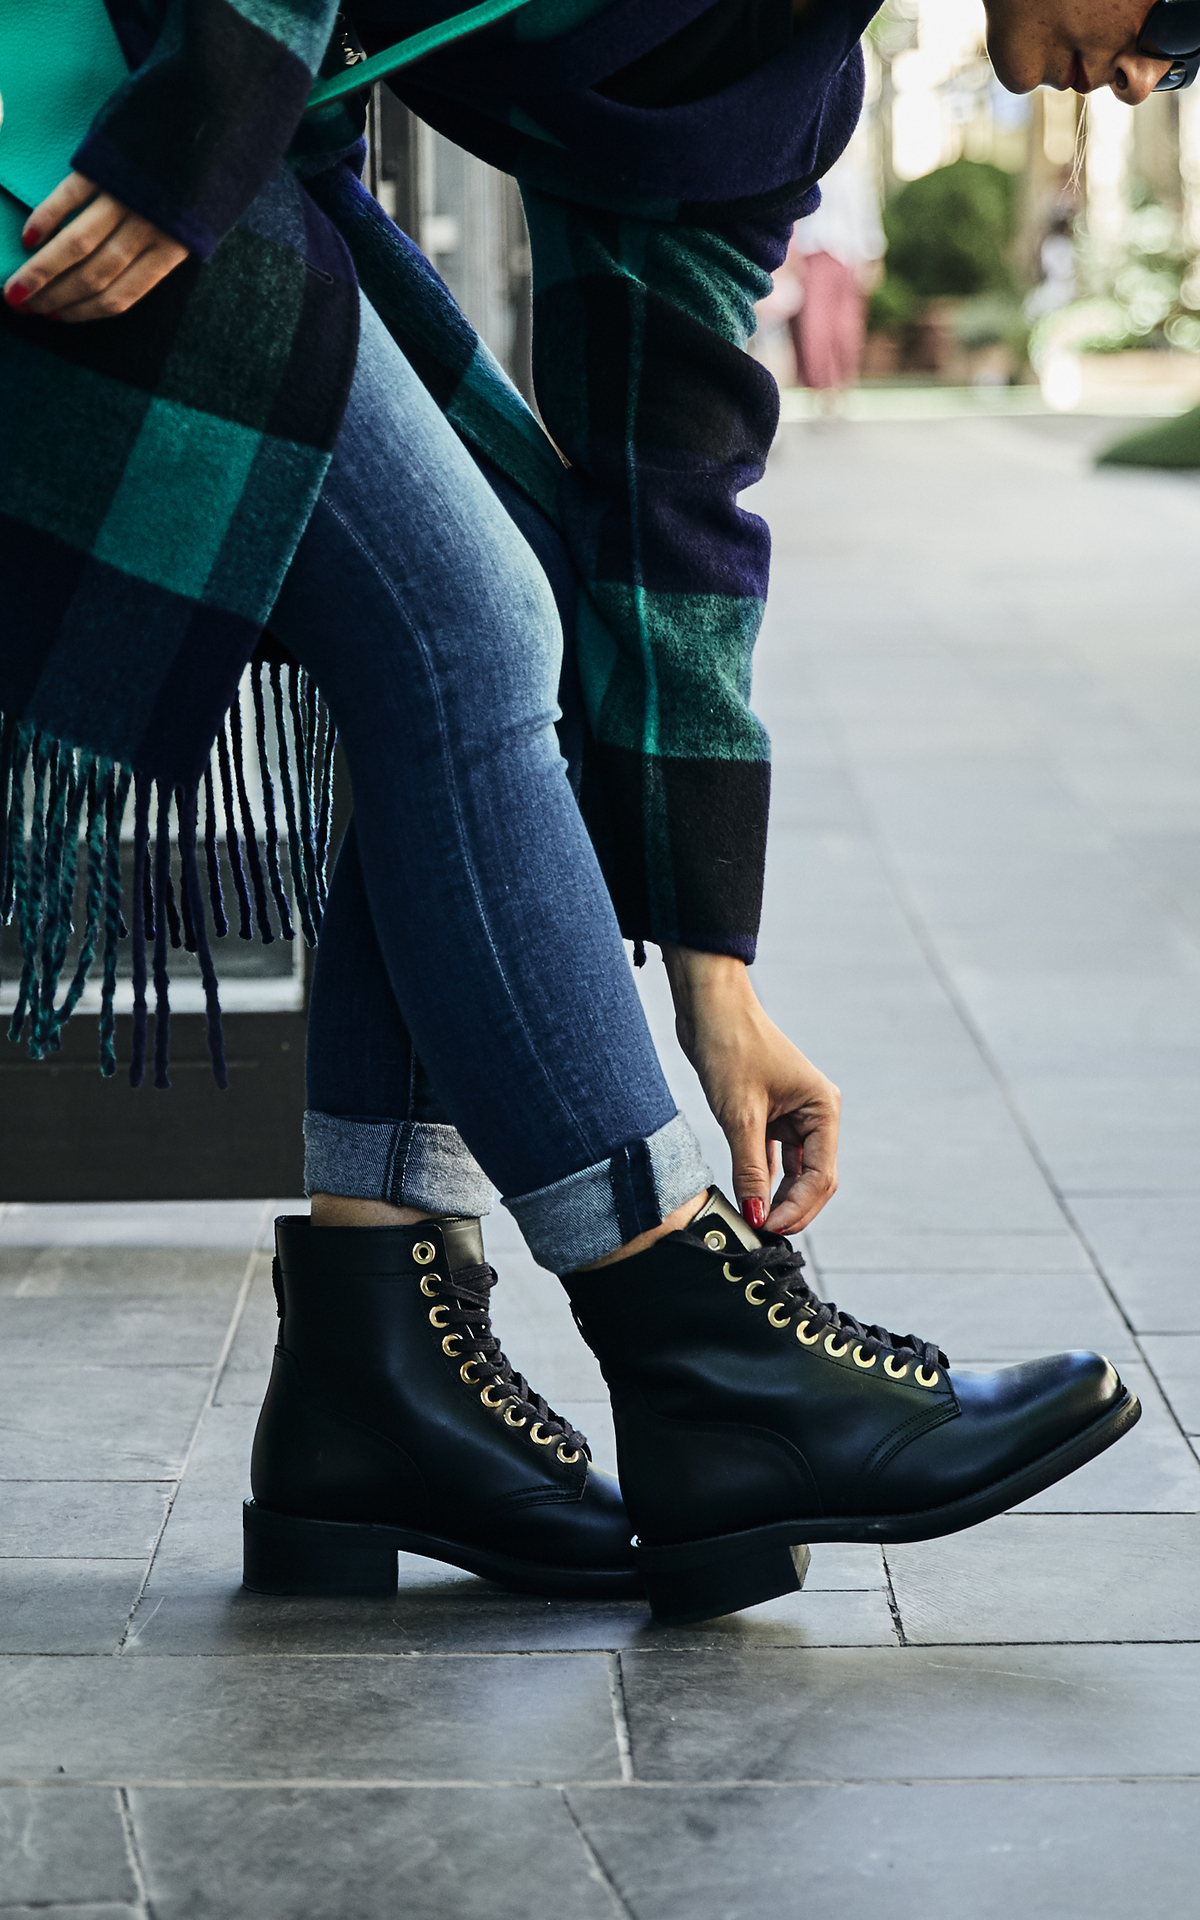 Woman with black combat lace boots